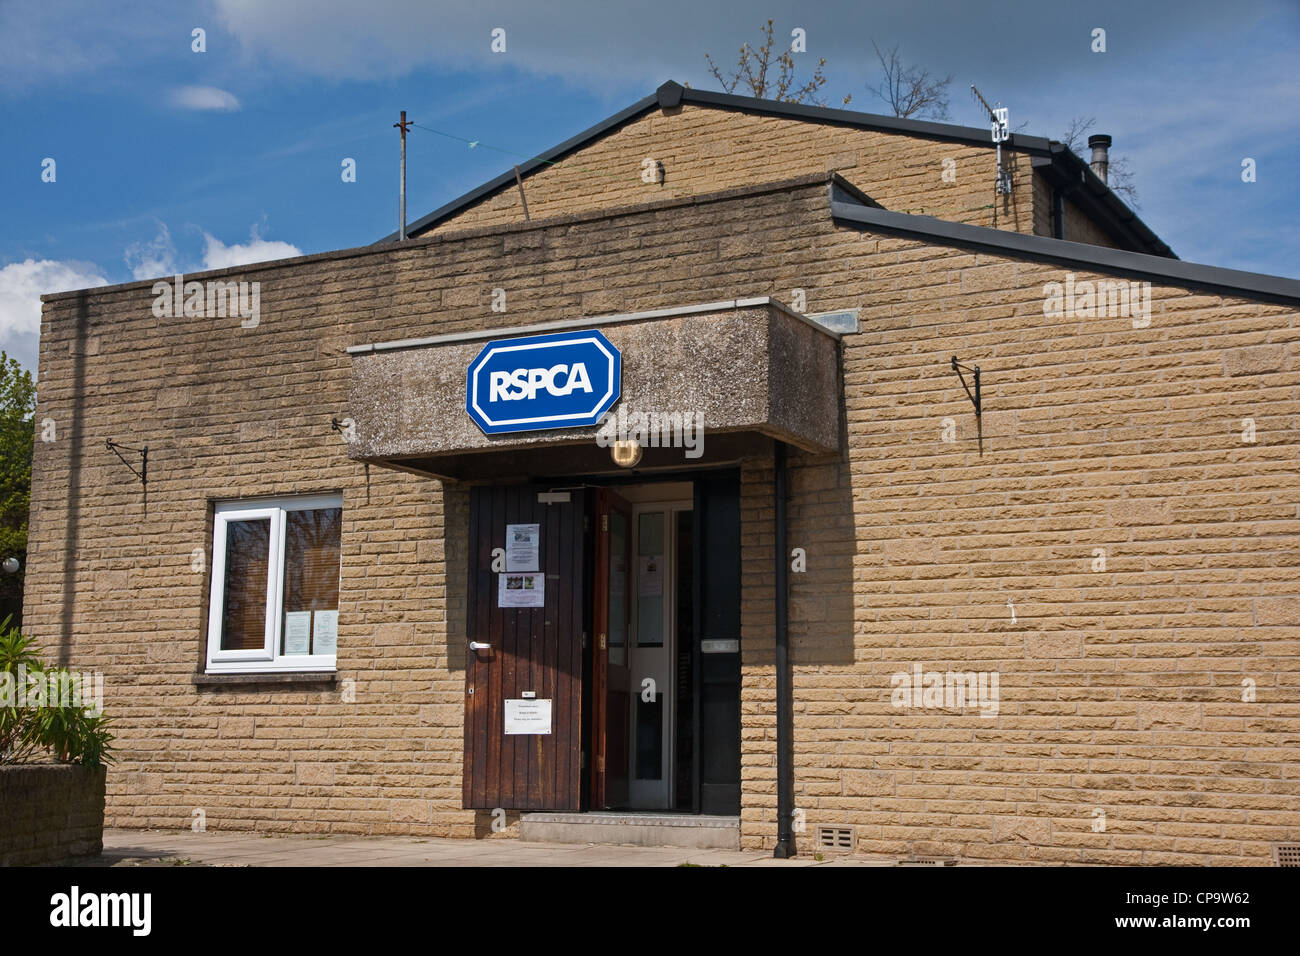 Entrance to RSPCA building in Halifax - Stock Image